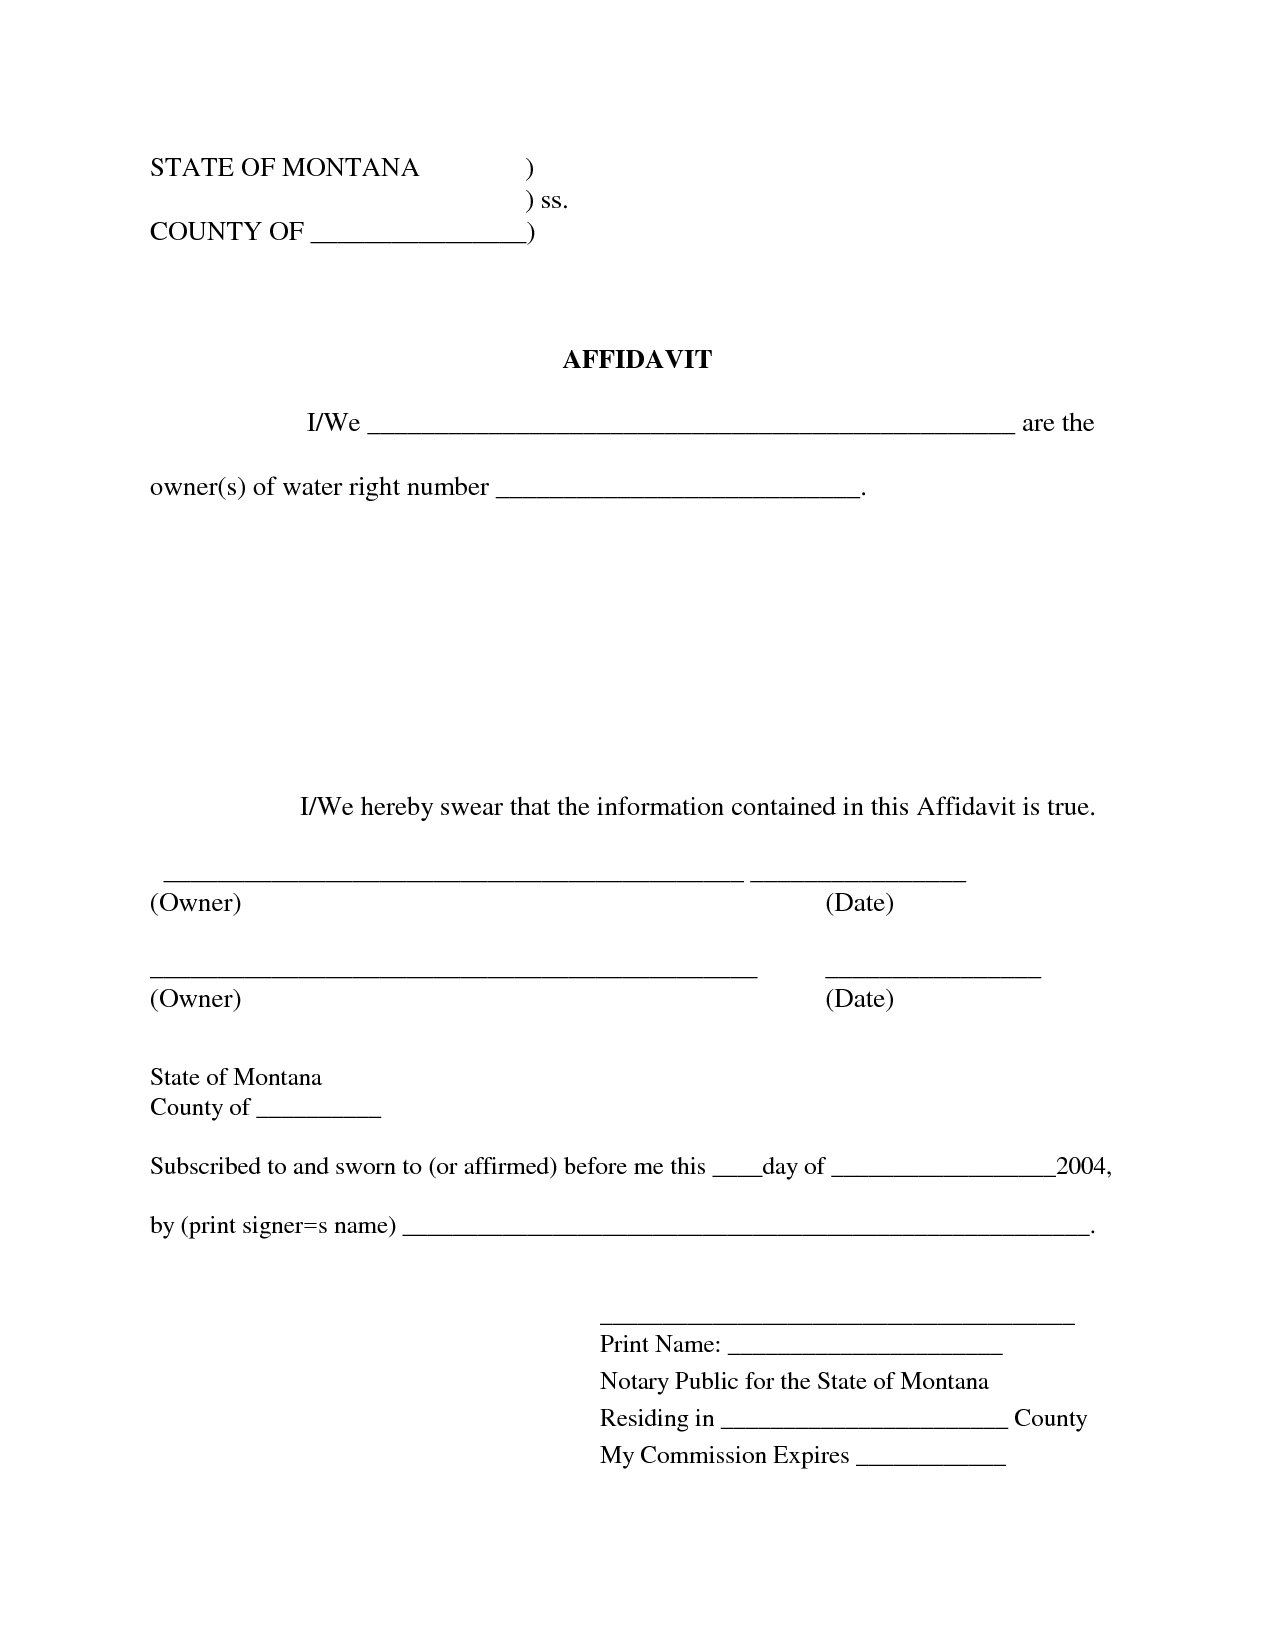 Free Blank Affidavit Form Blank Sworn Affidavit Forms kiss68one